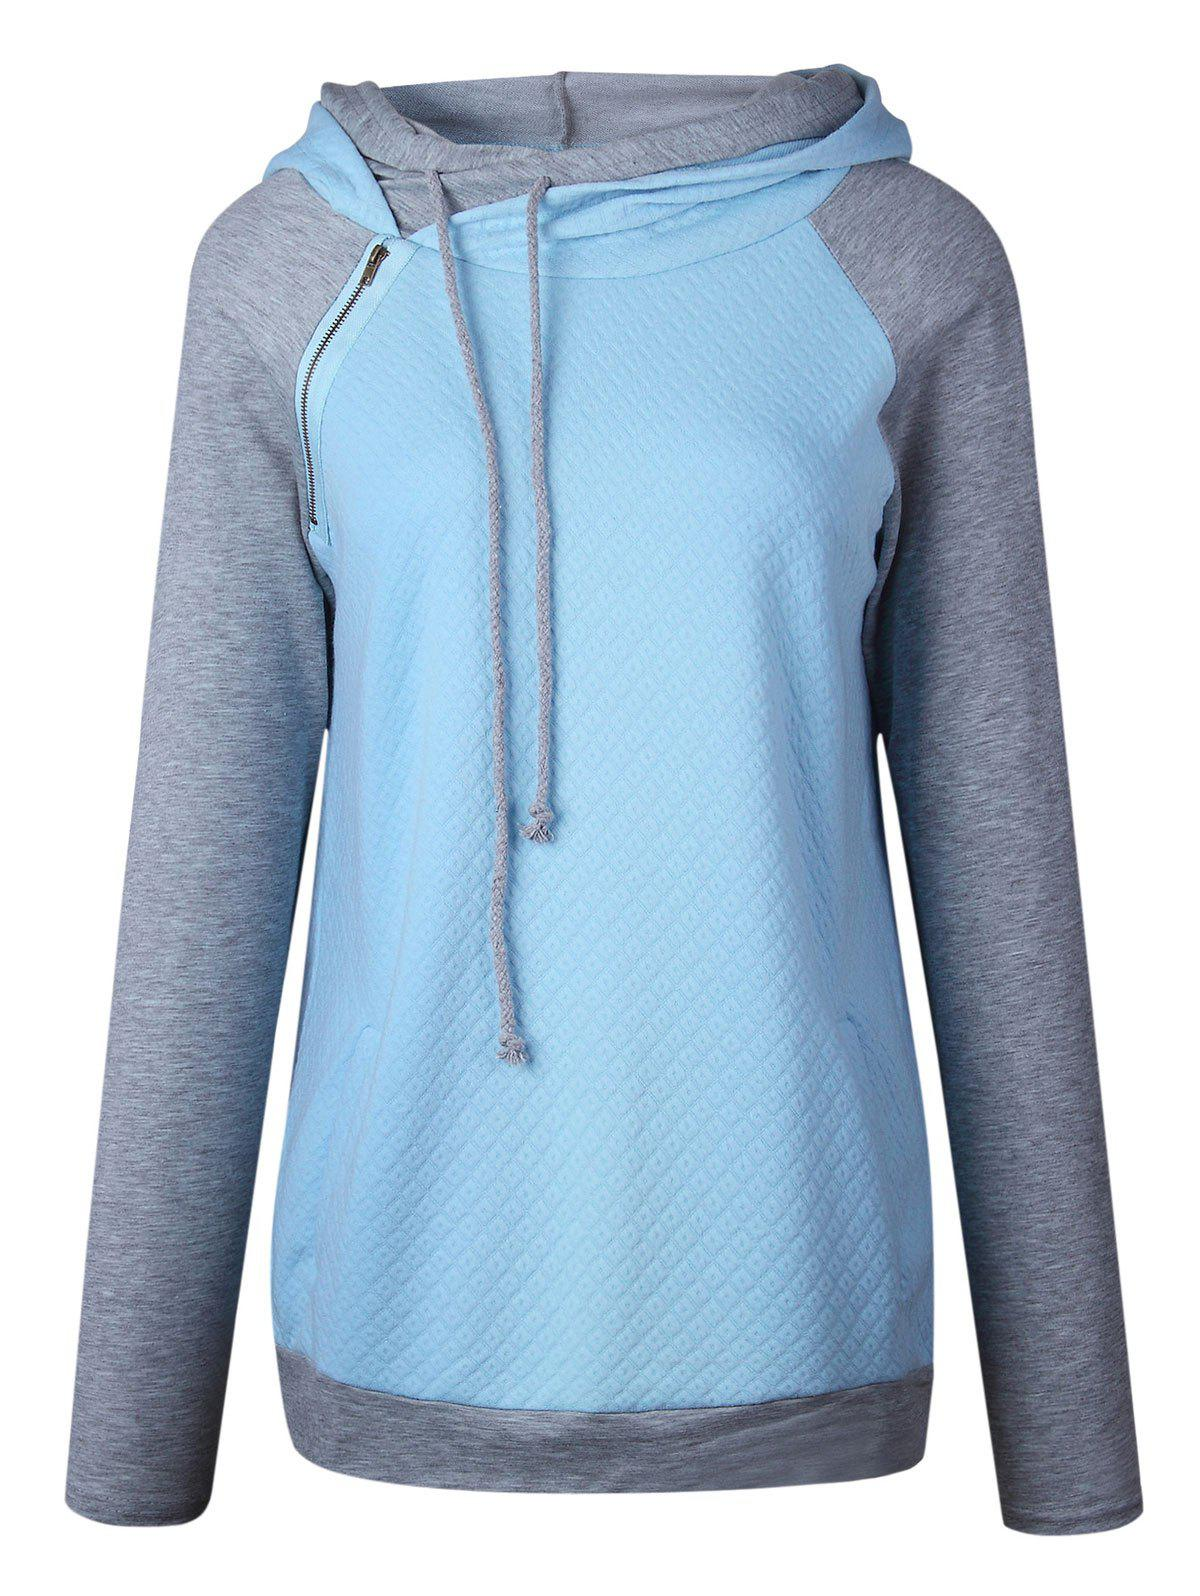 Raglan Sleeve Zippered Embellished Mock Neck Hoodie - BLUE L